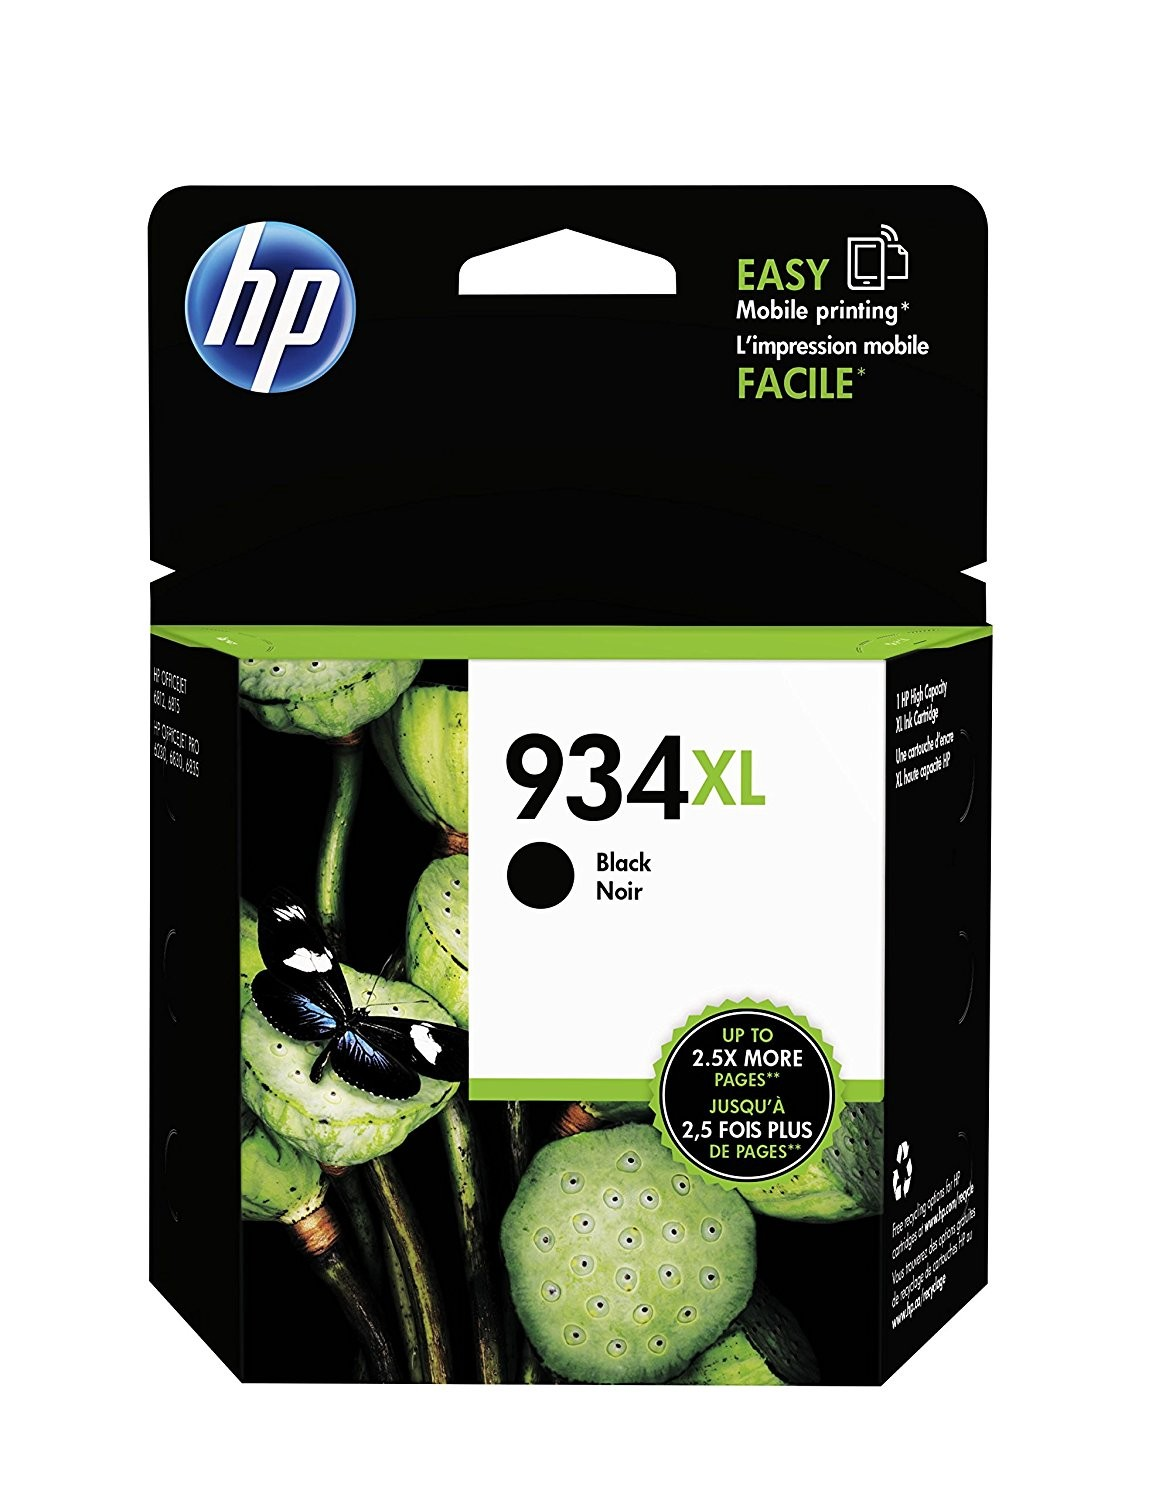 HP 934XL Black High Yield Original Ink Cartridge - C2P23AE